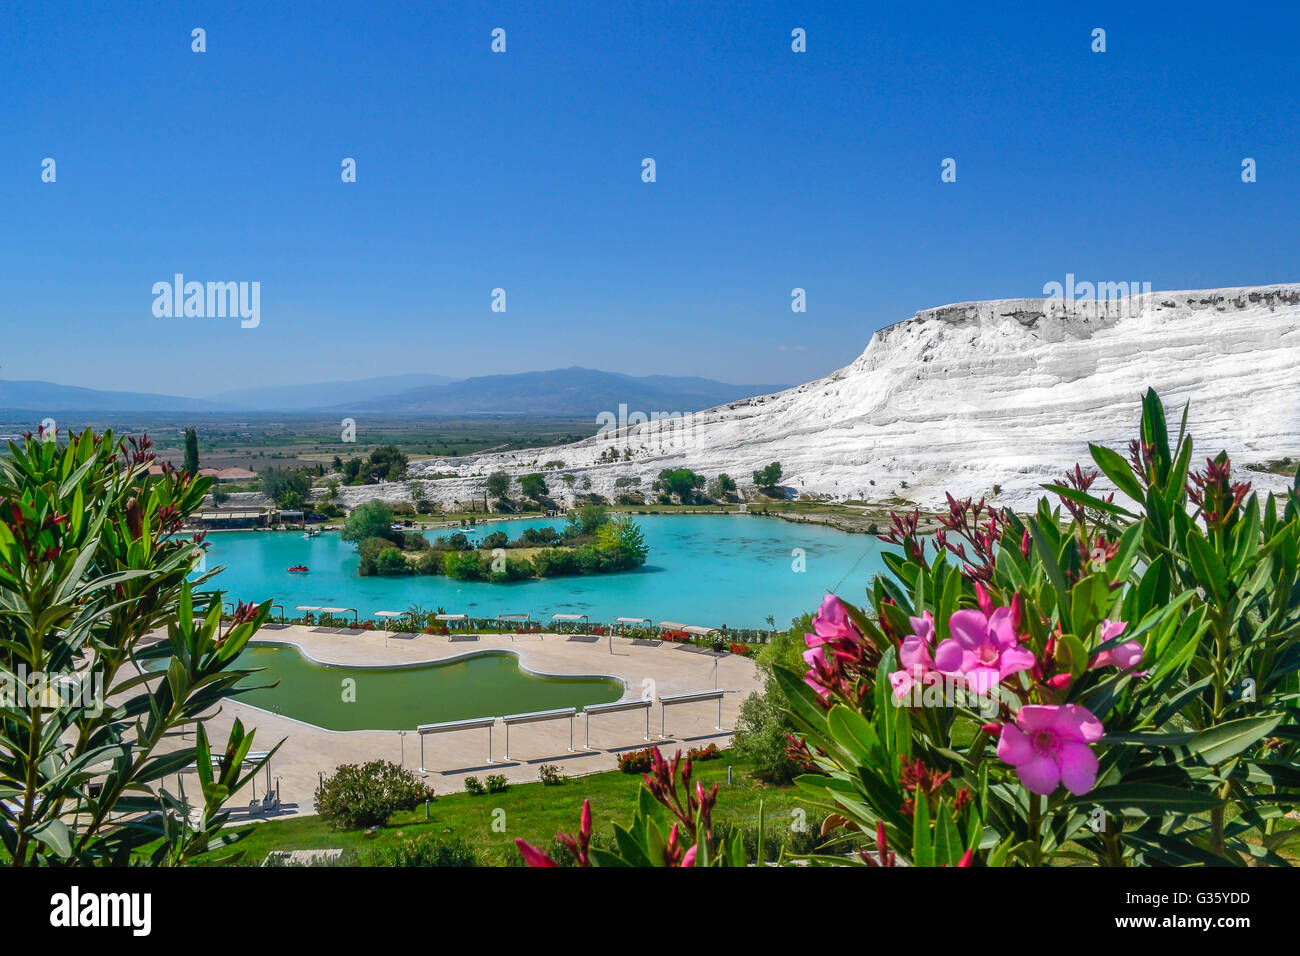 Turkey, Pamukkale, travel, amazing view, white, mineral bath, pink flowers, blue water, hot springs, landscape, - Stock Image